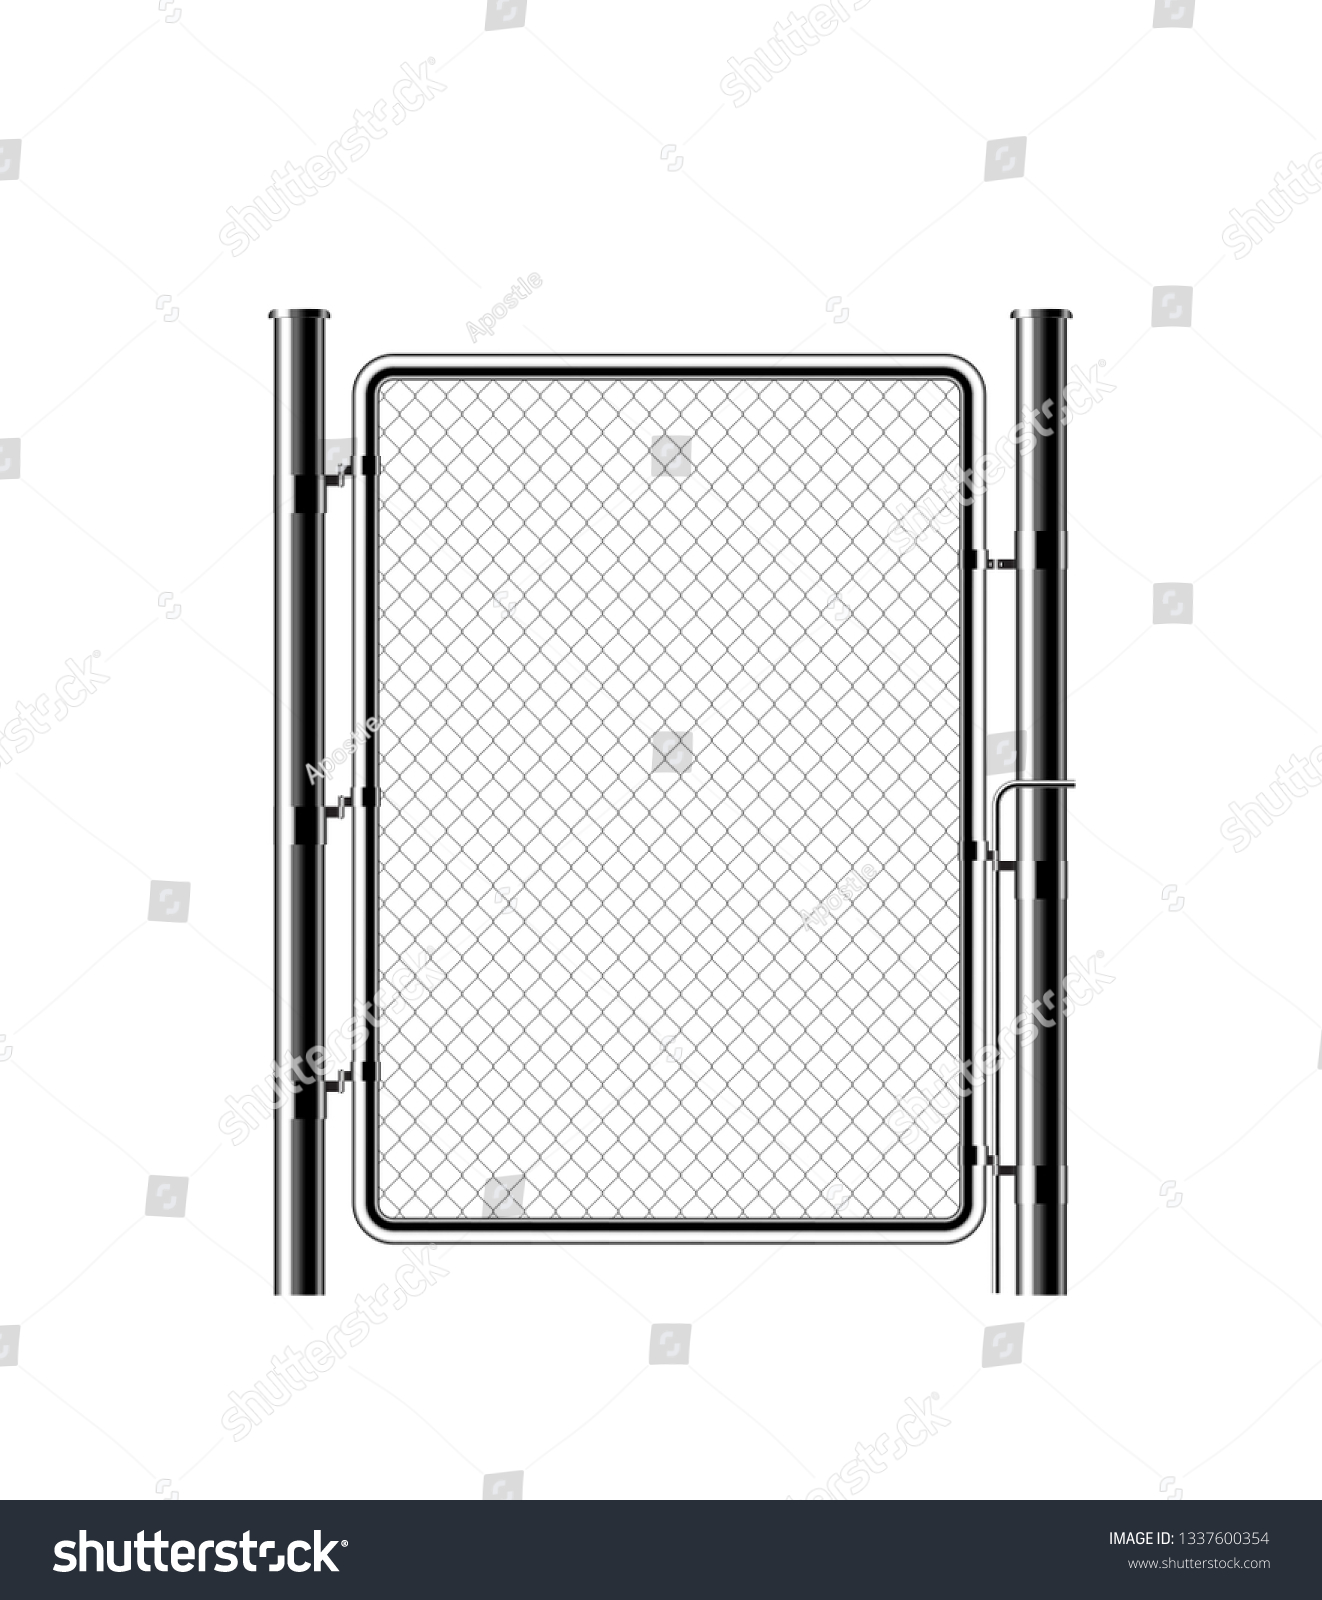 hight resolution of realistic metal chain link fence rabitz art design gate cemetery fence hedge